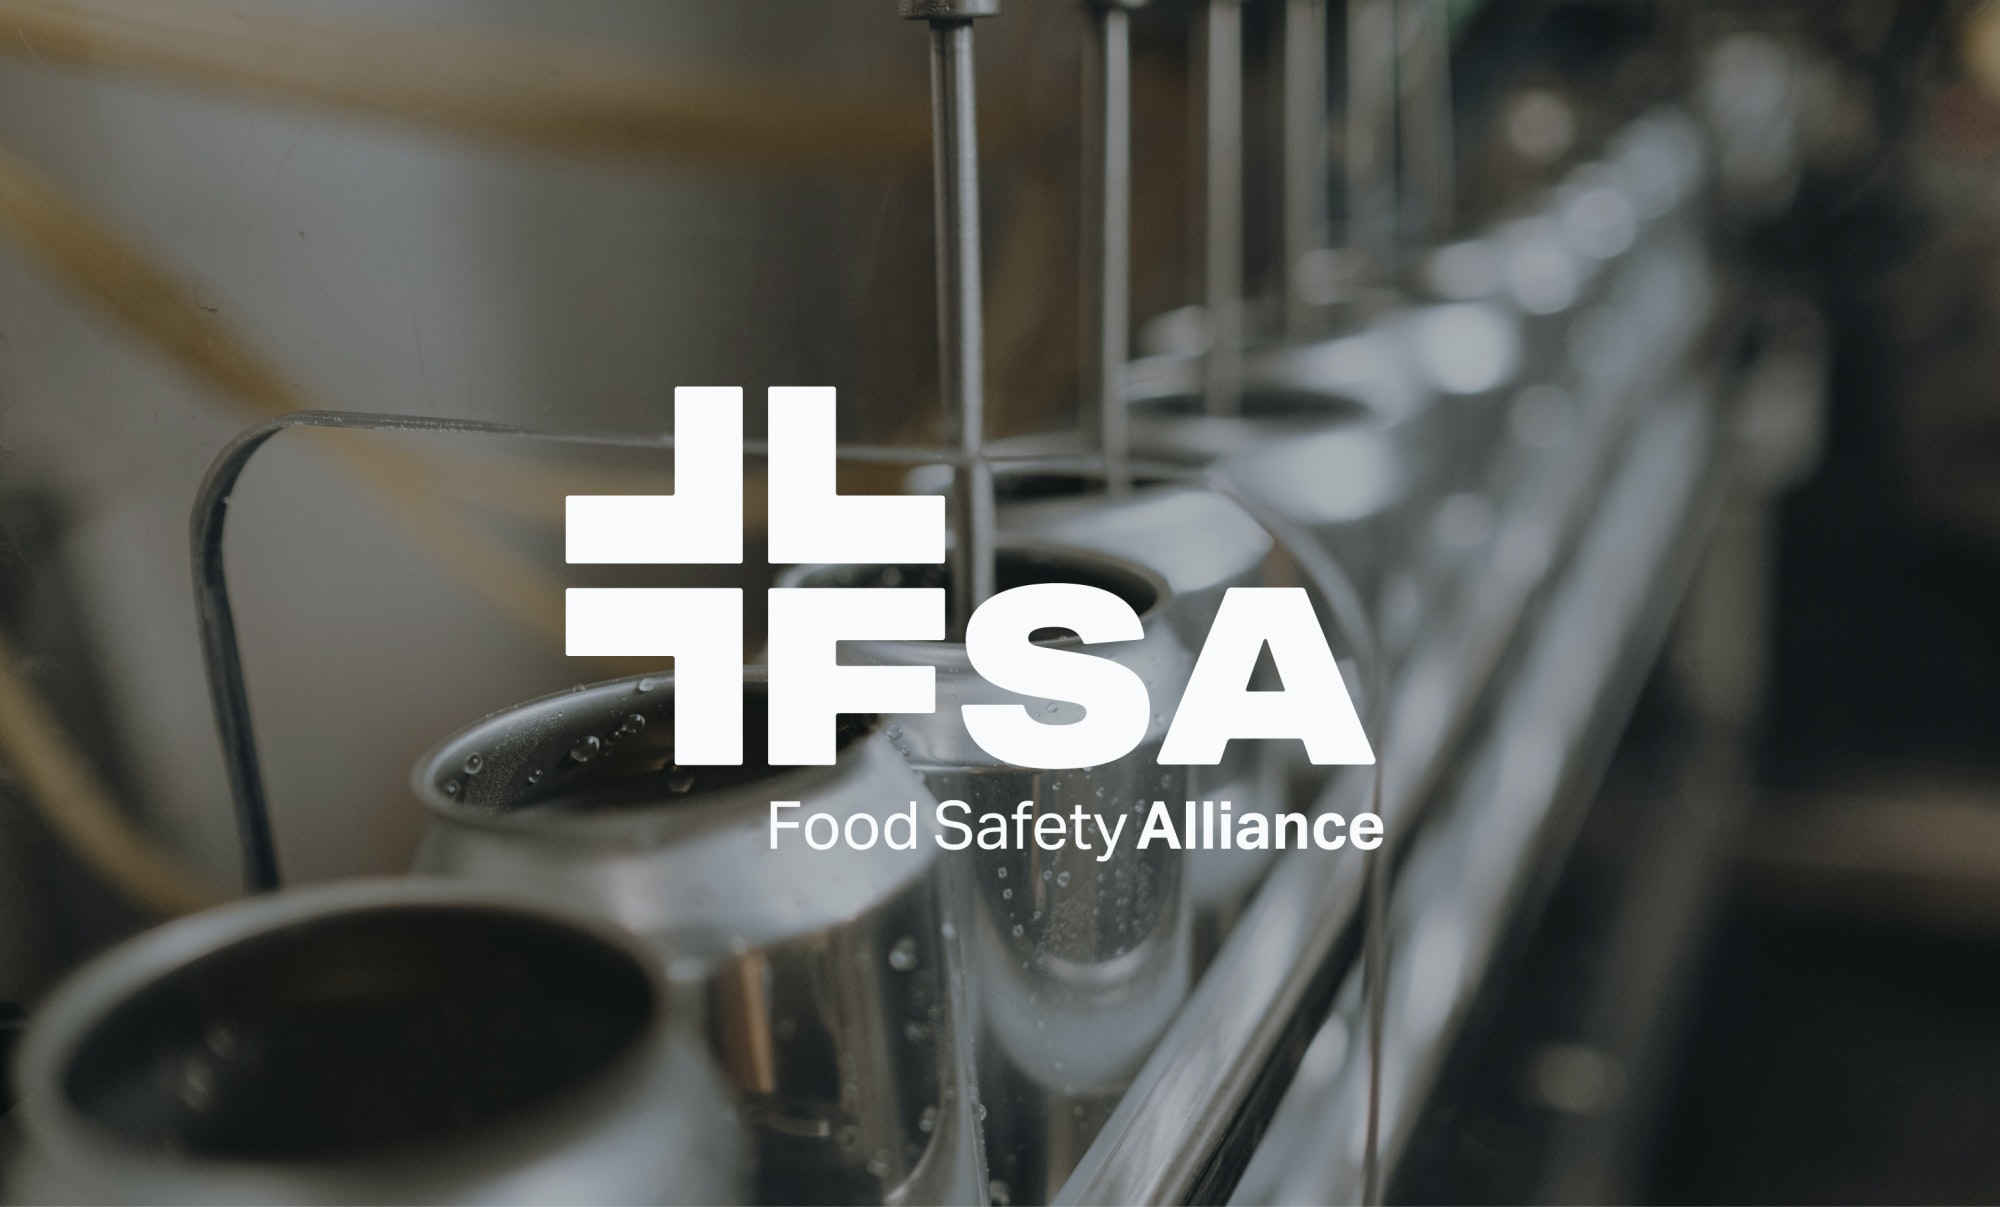 FSA Logo overlaid on image of cans on production line